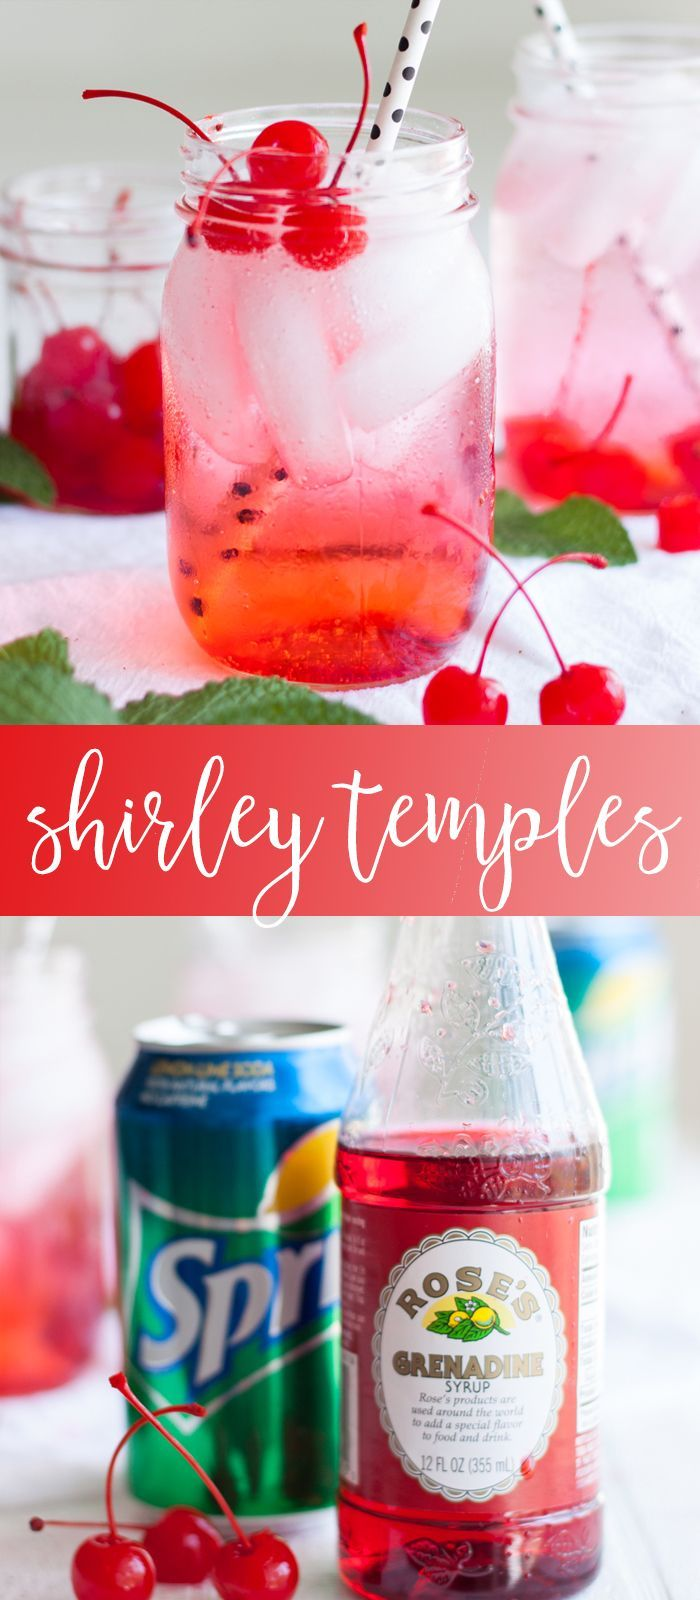 Shirley Temple Recipe | kid friendly drink recipes | easy drink recipes | summer drink recipes || Oh So Delicioso #recipes #drinks #drinkrecipe #shirleytemple #summer #summerdrink #summerrecipe